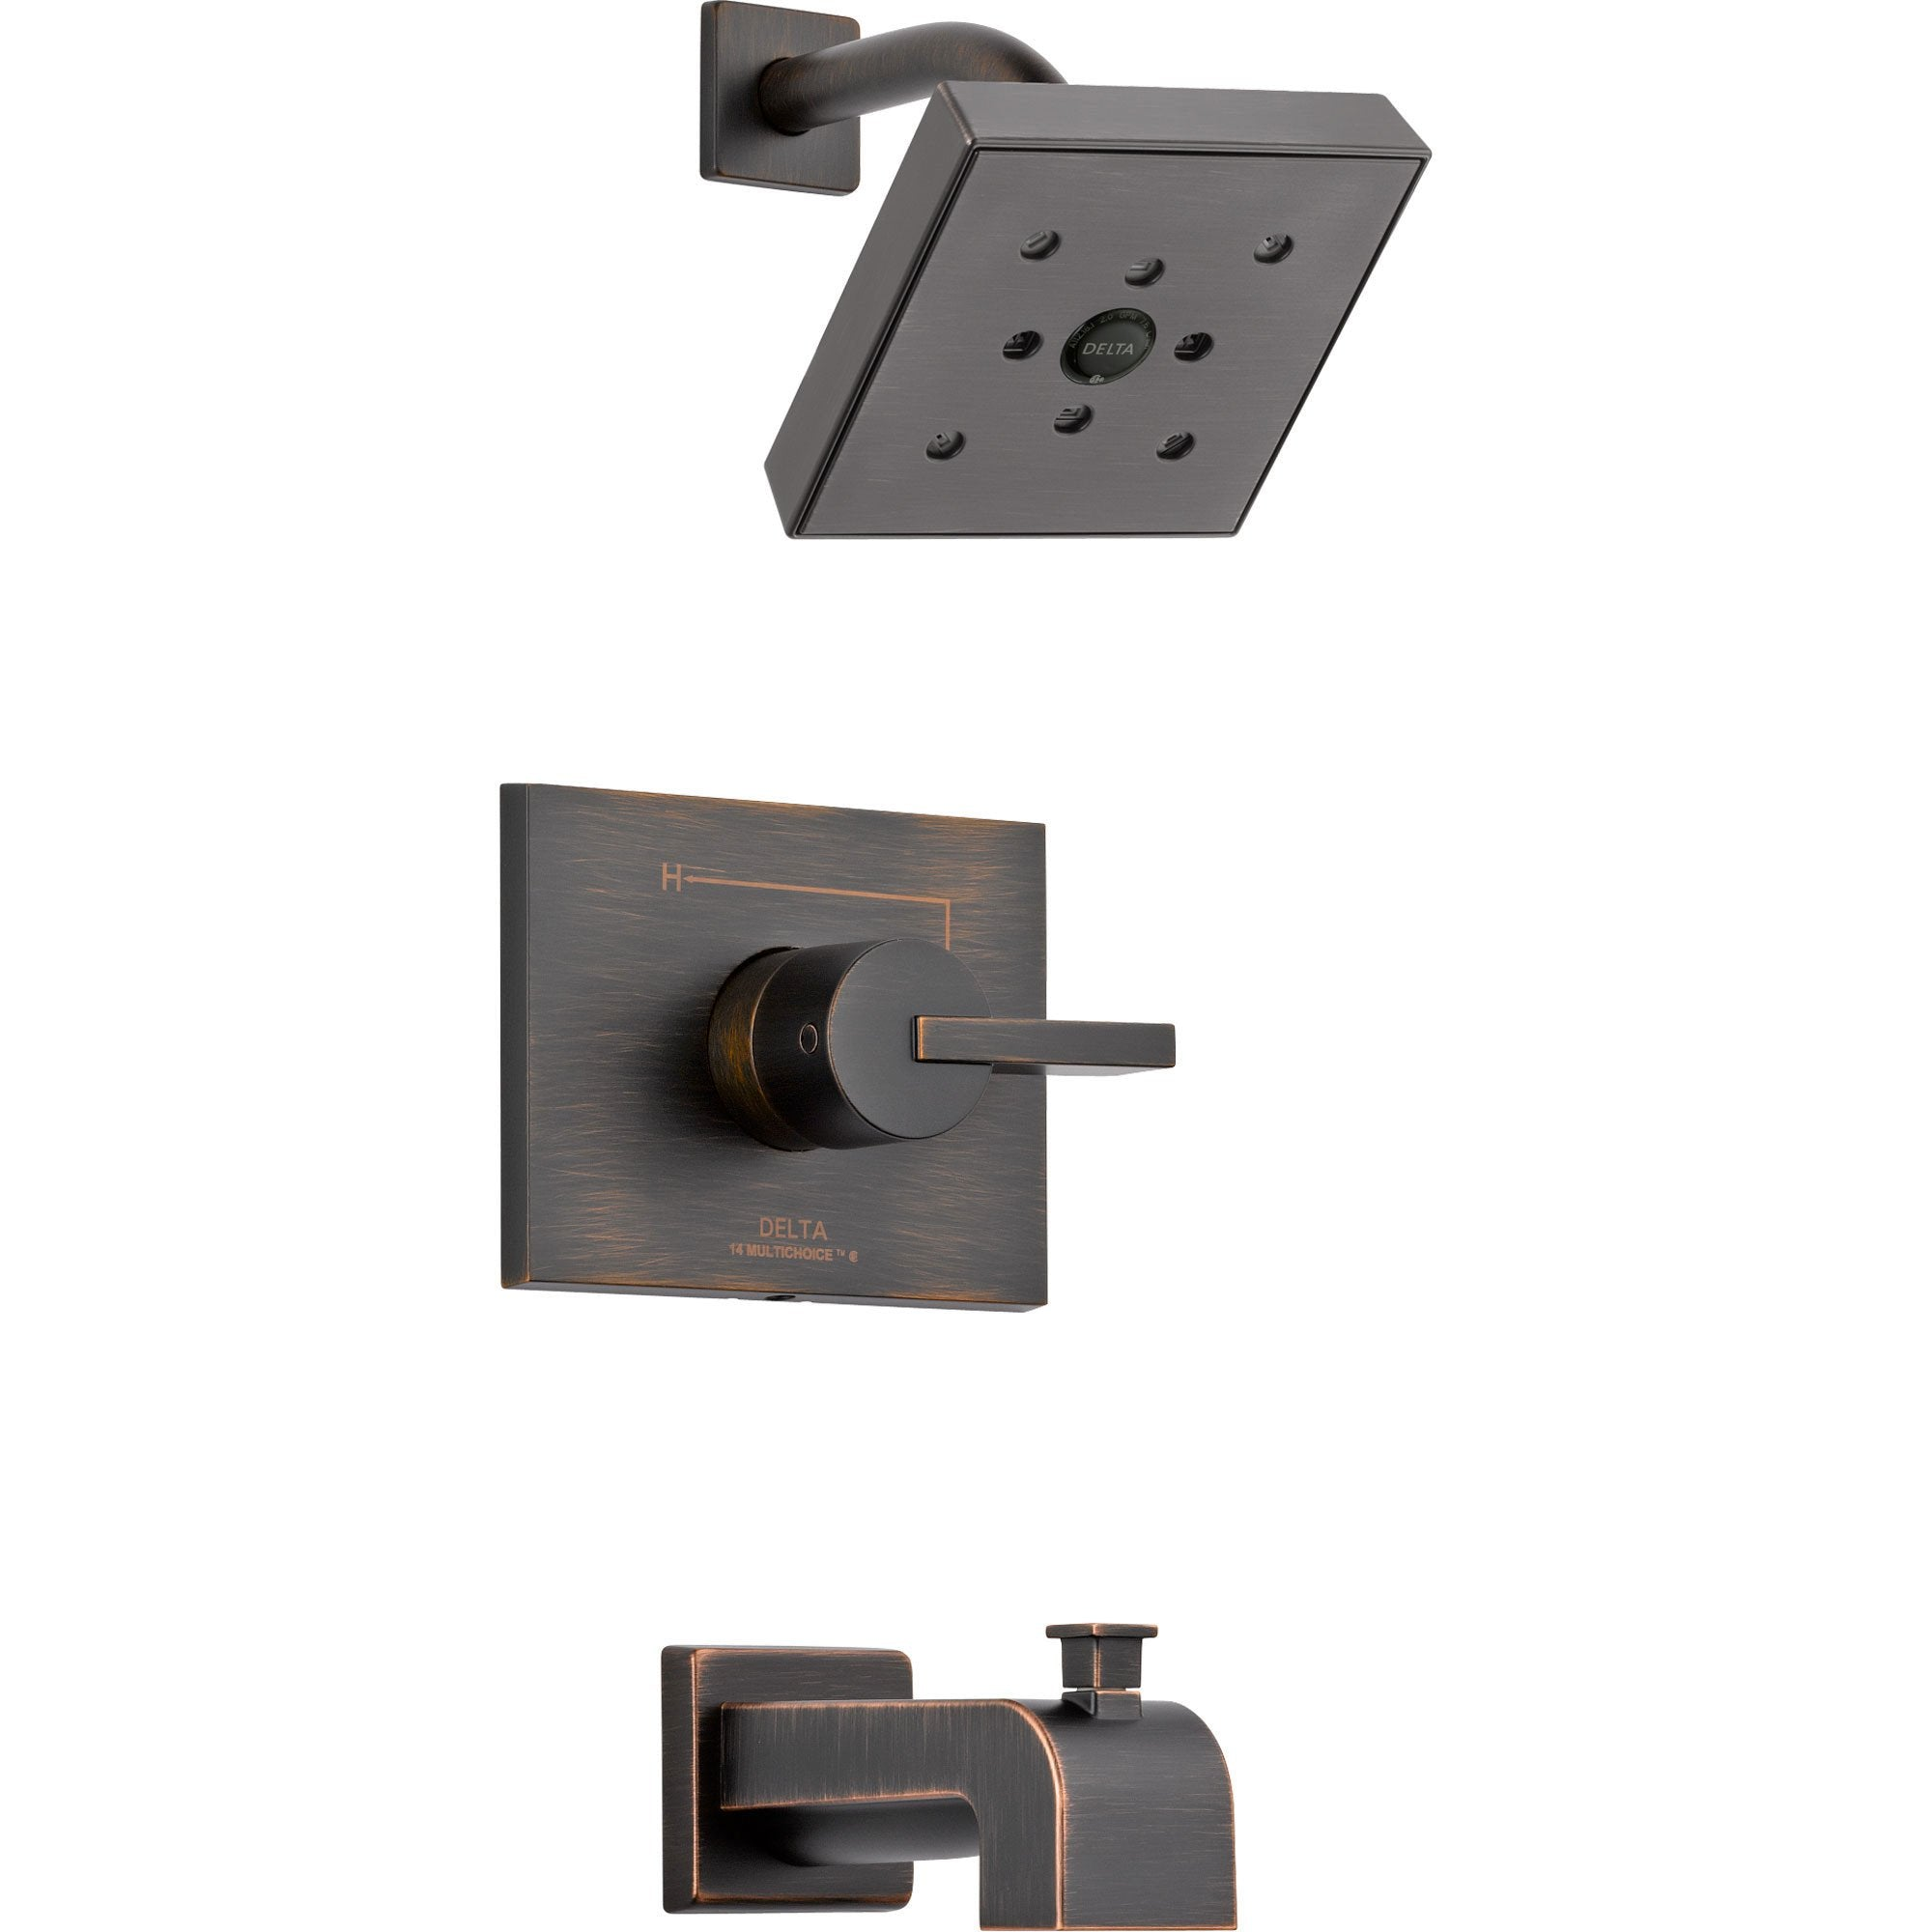 Delta Vero Modern Venetian Bronze Tub and Shower Combination Faucet Trim 563334